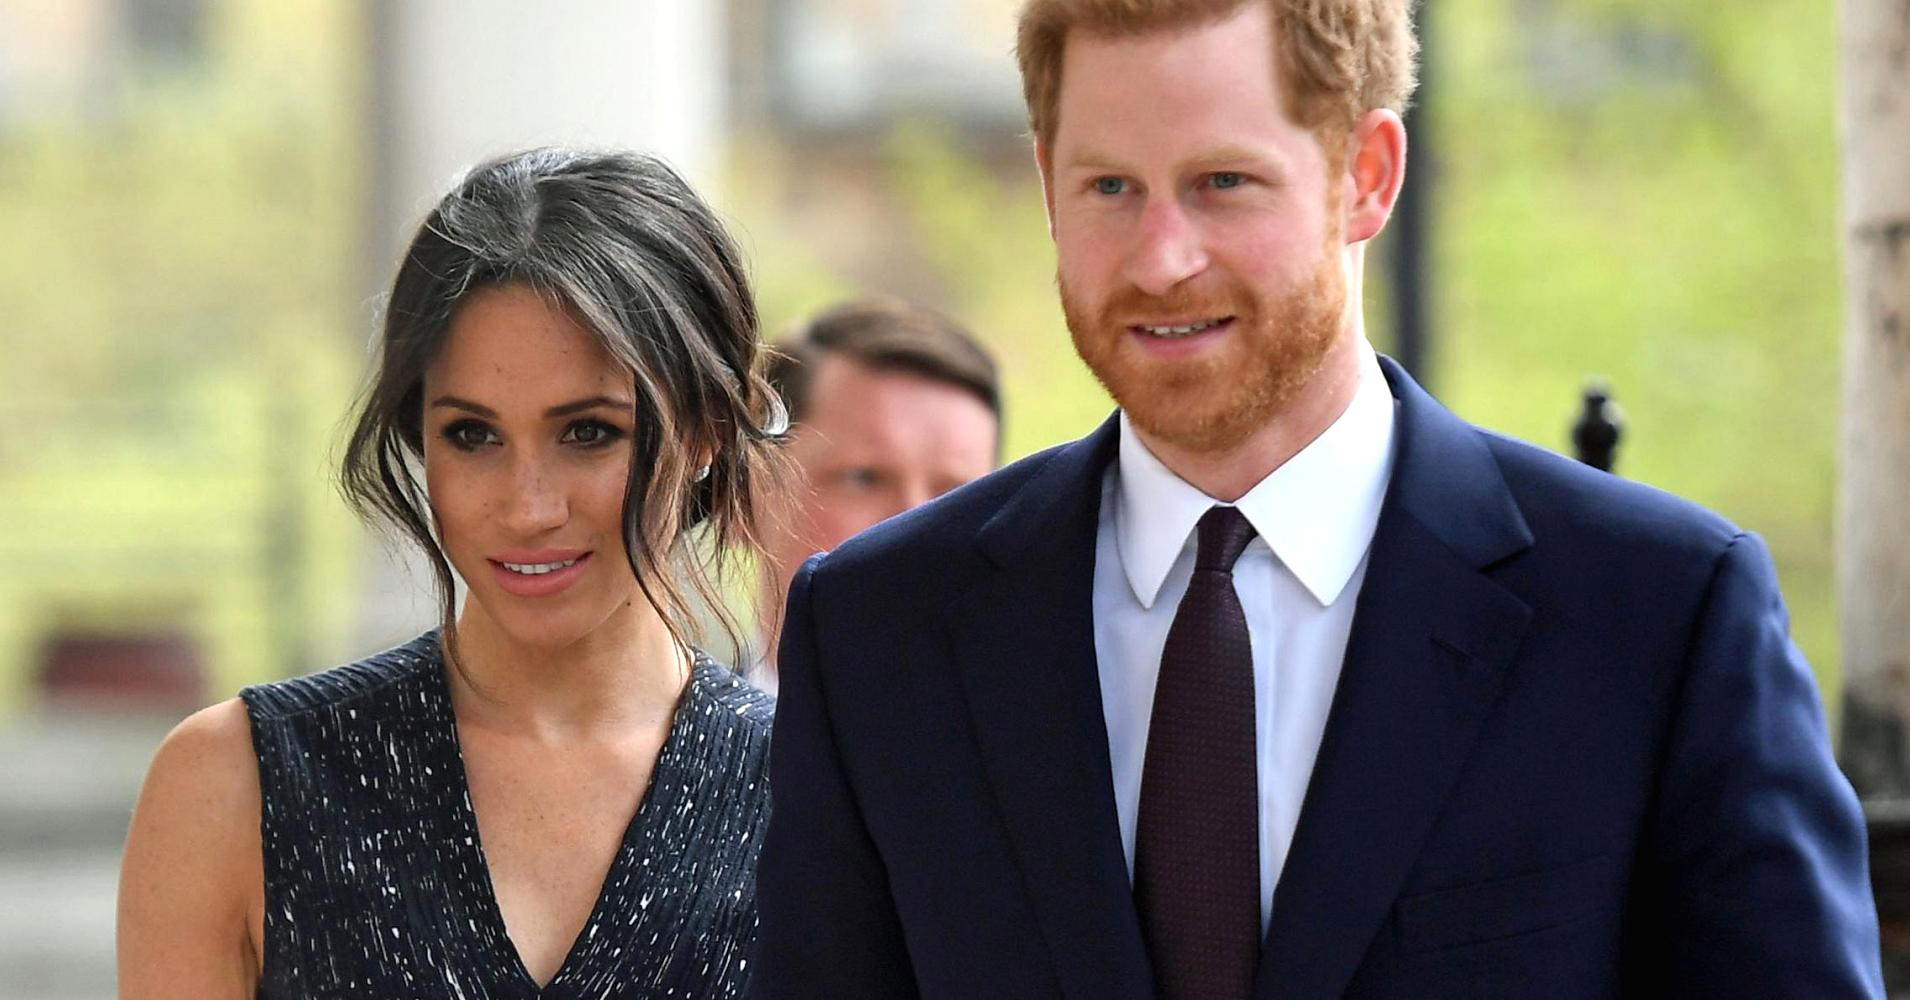 Meghan Markle life changes and facts of interest